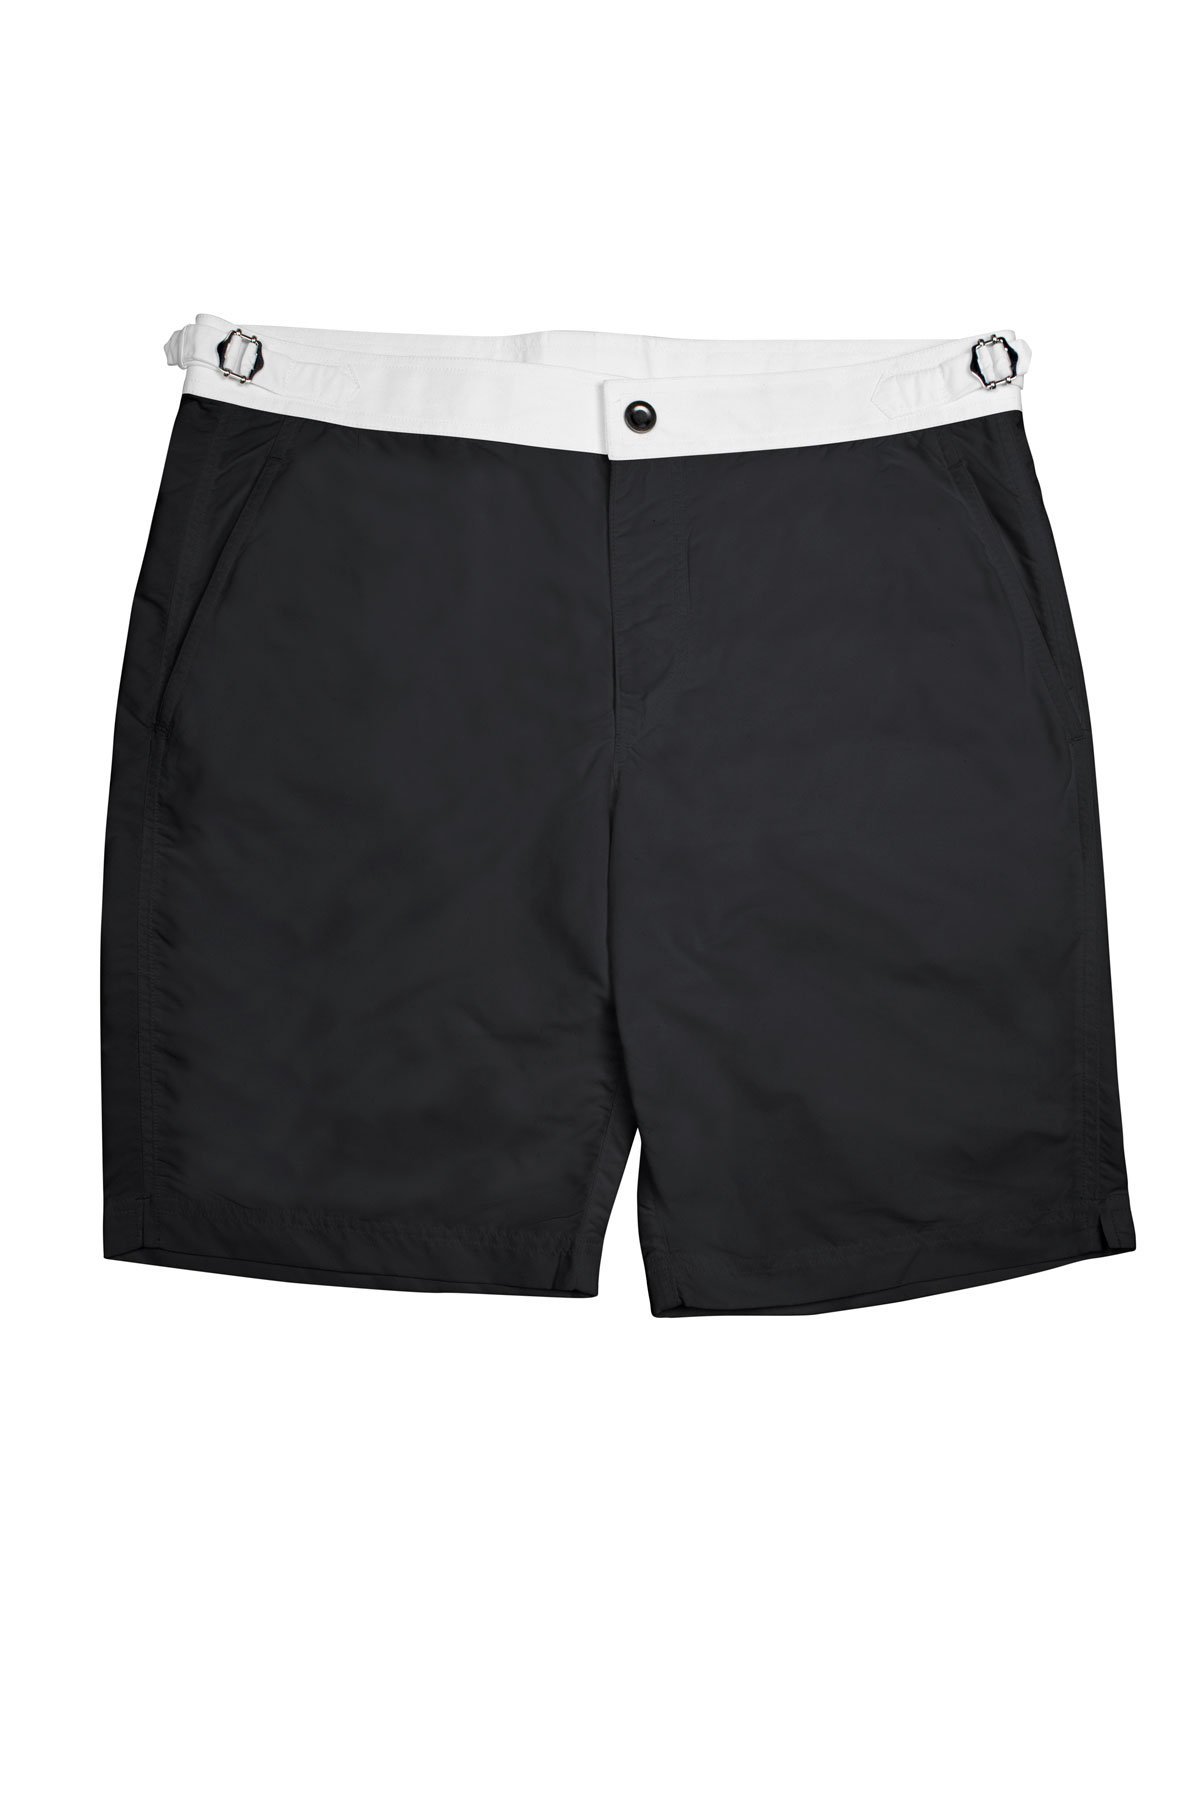 Black Swim Shorts w White Waistband